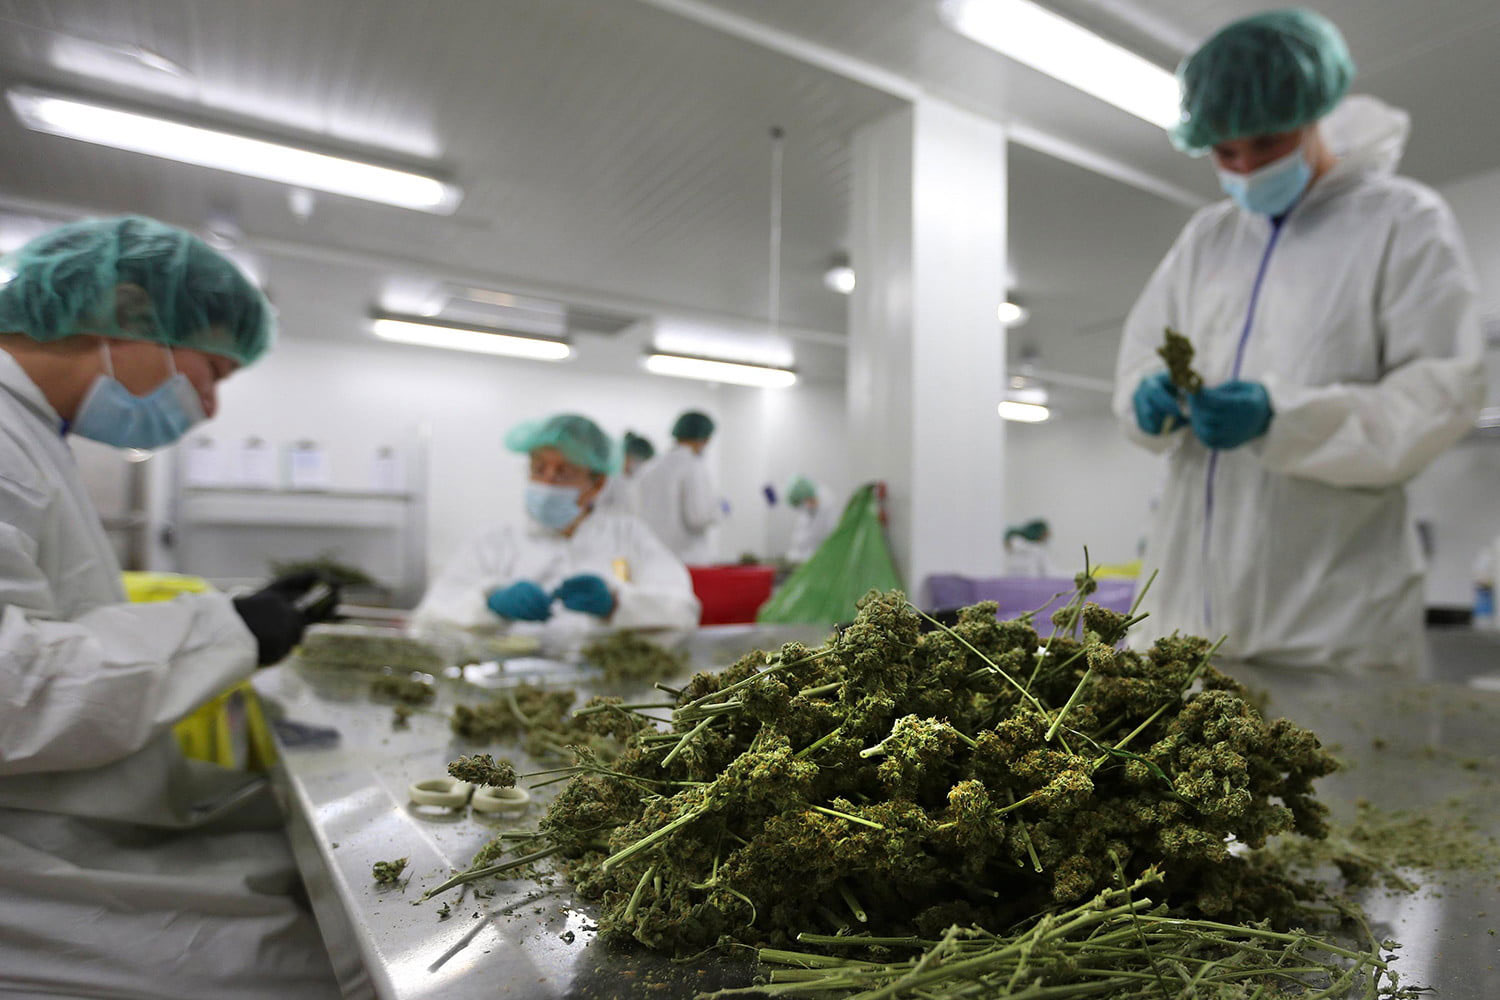 Operational Expertise for Cannabis Projects